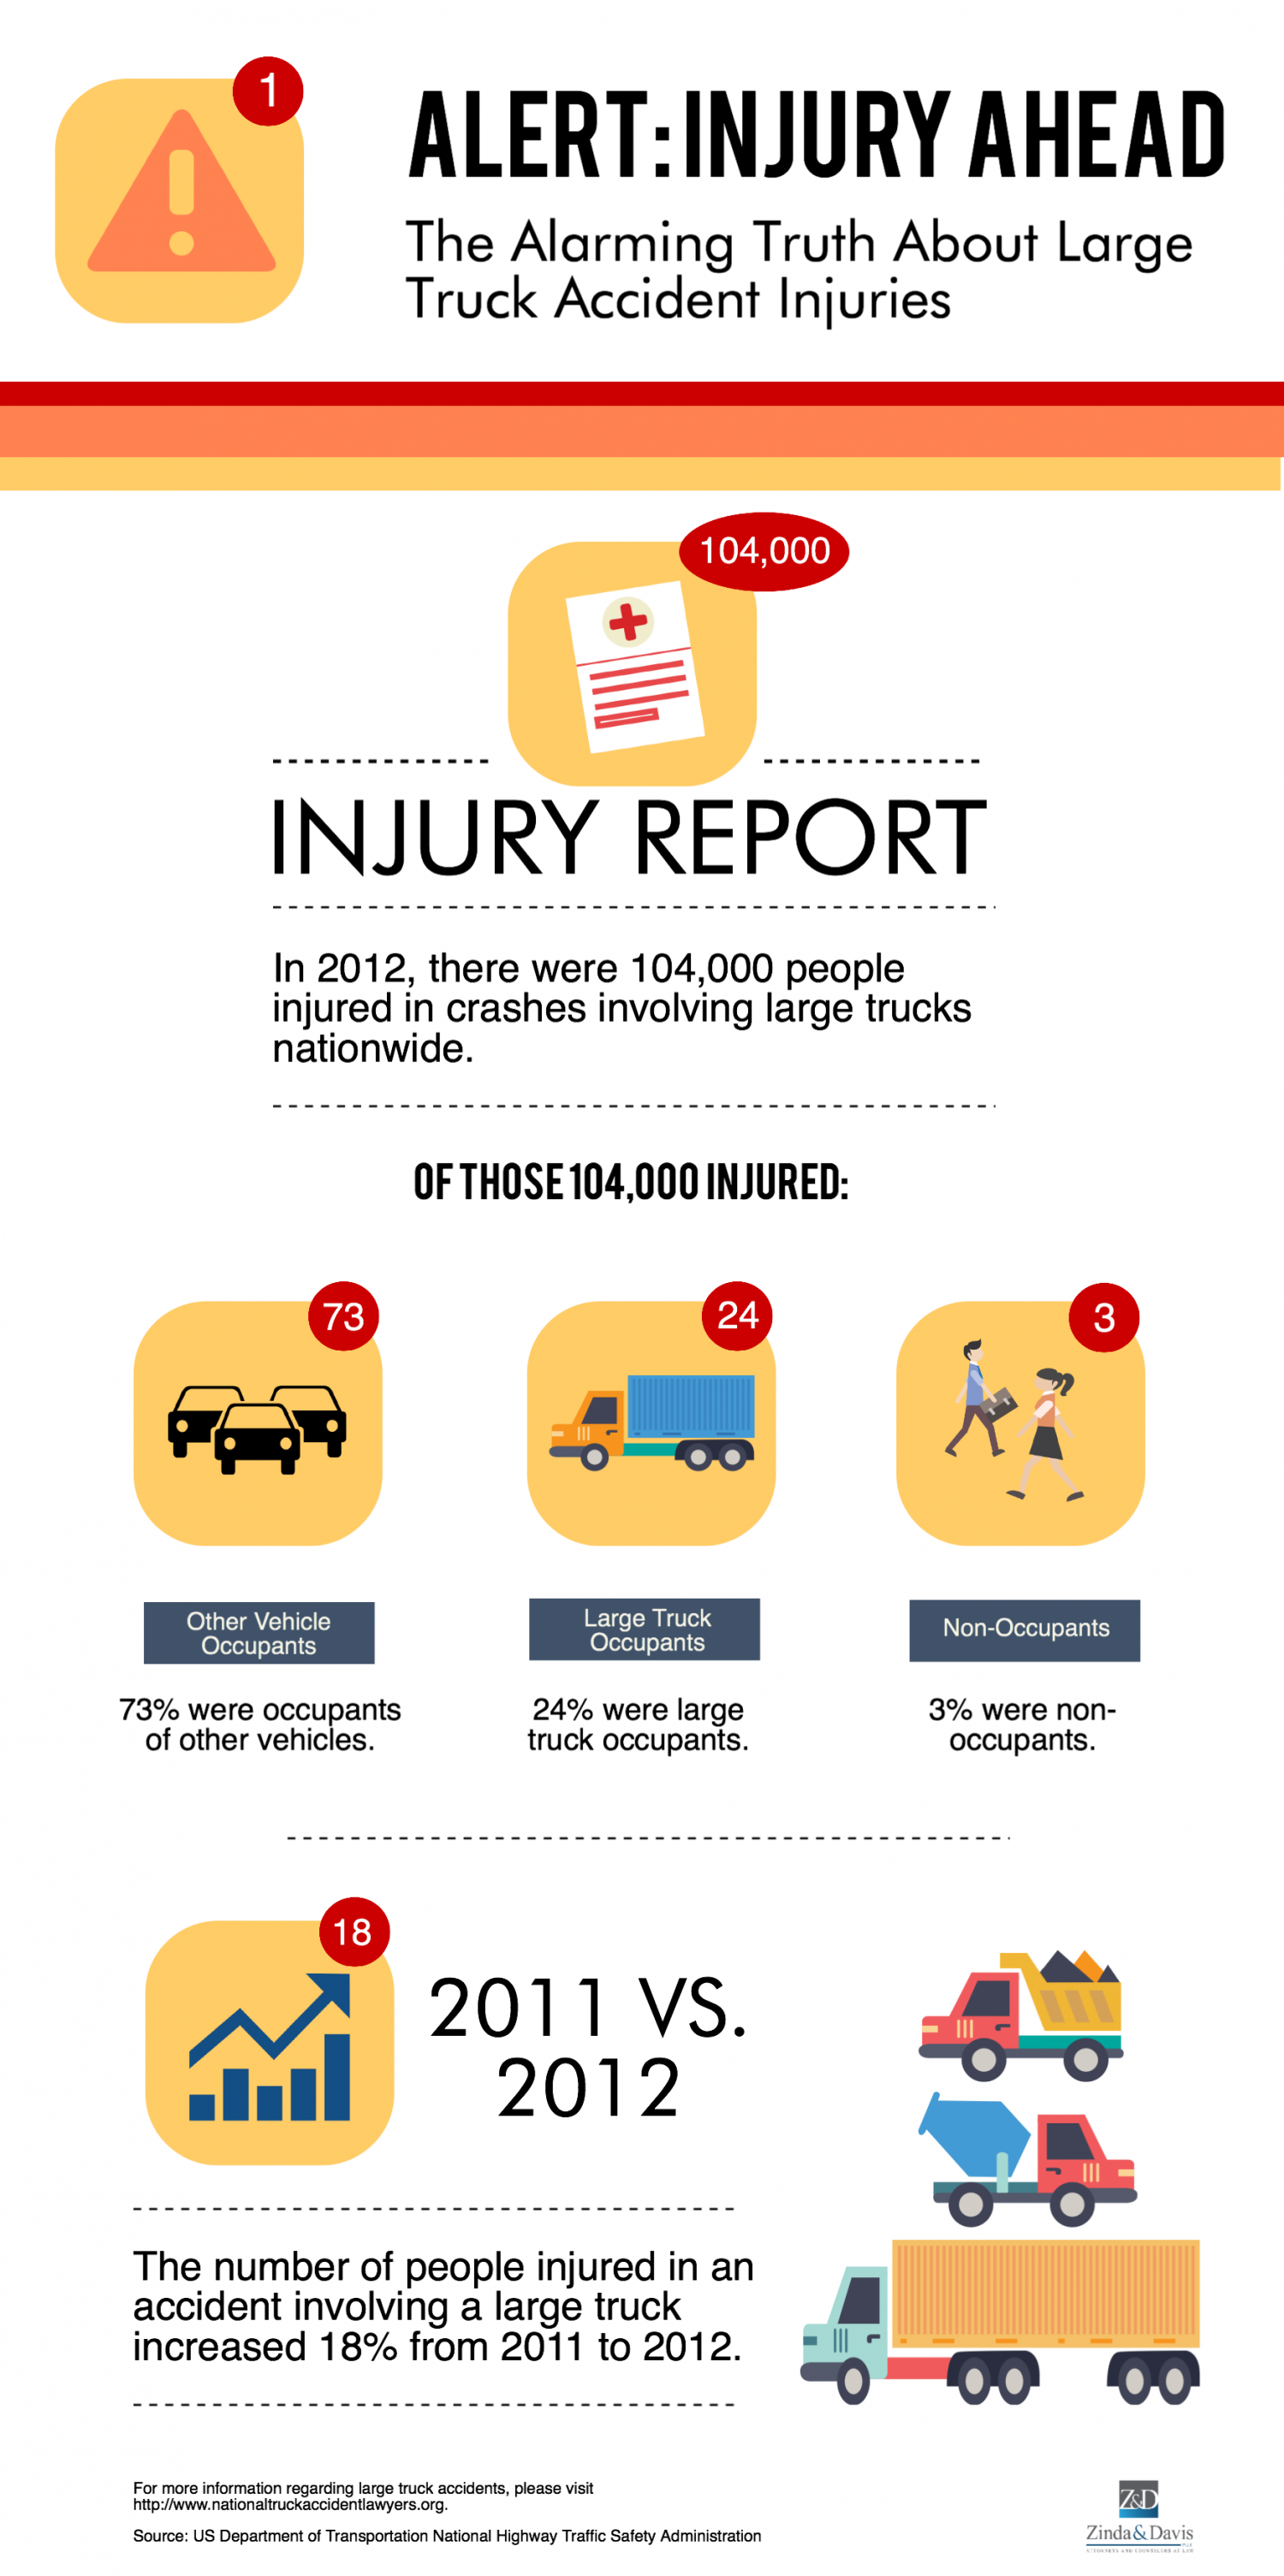 The Alarming Truth About Large Truck Accident Injuries Infographic